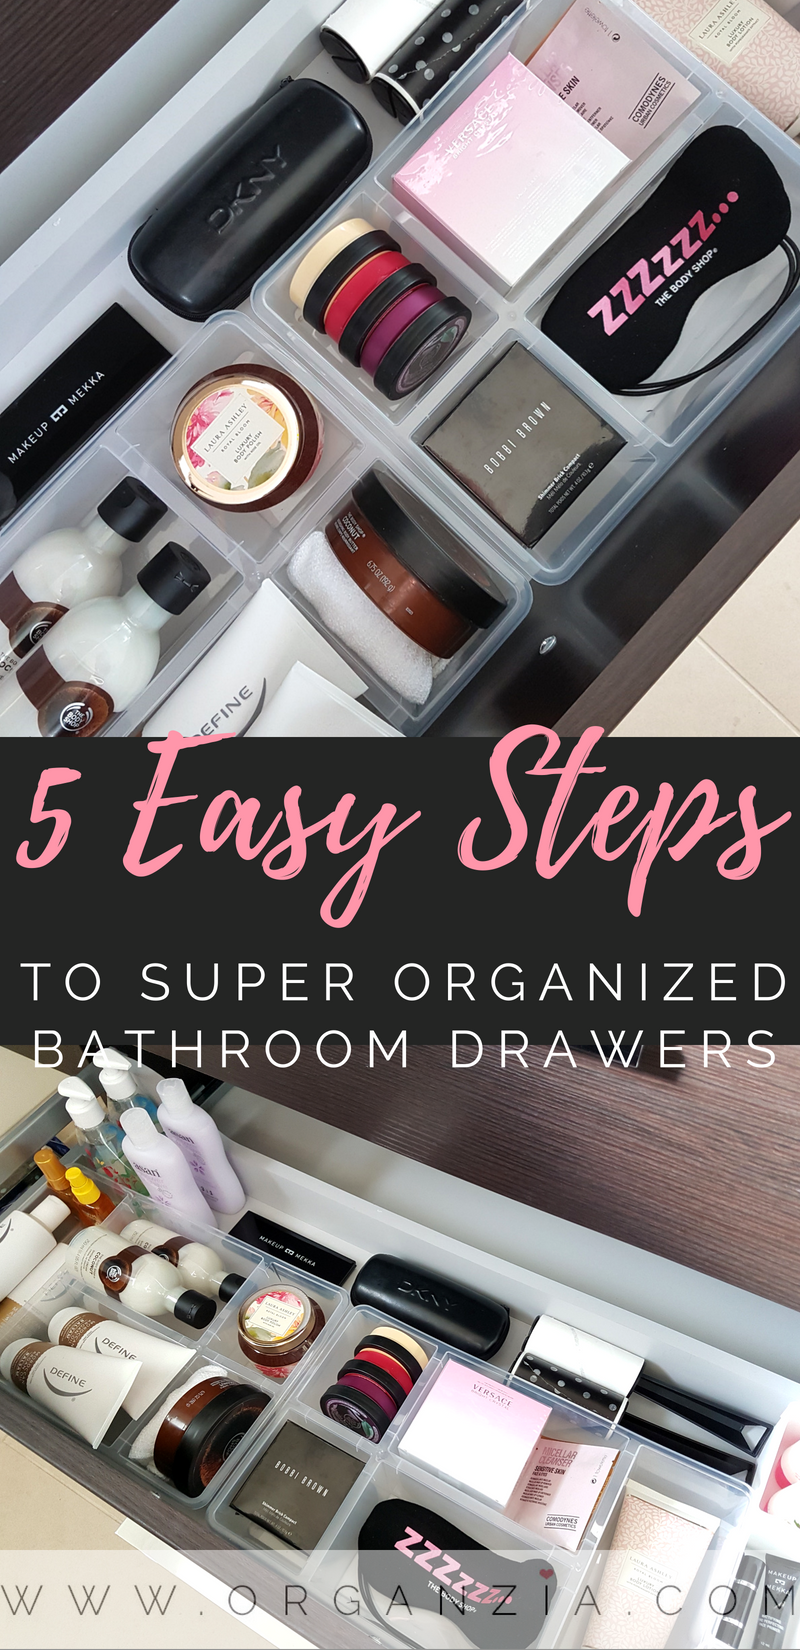 To have super organized bathroom drawers can